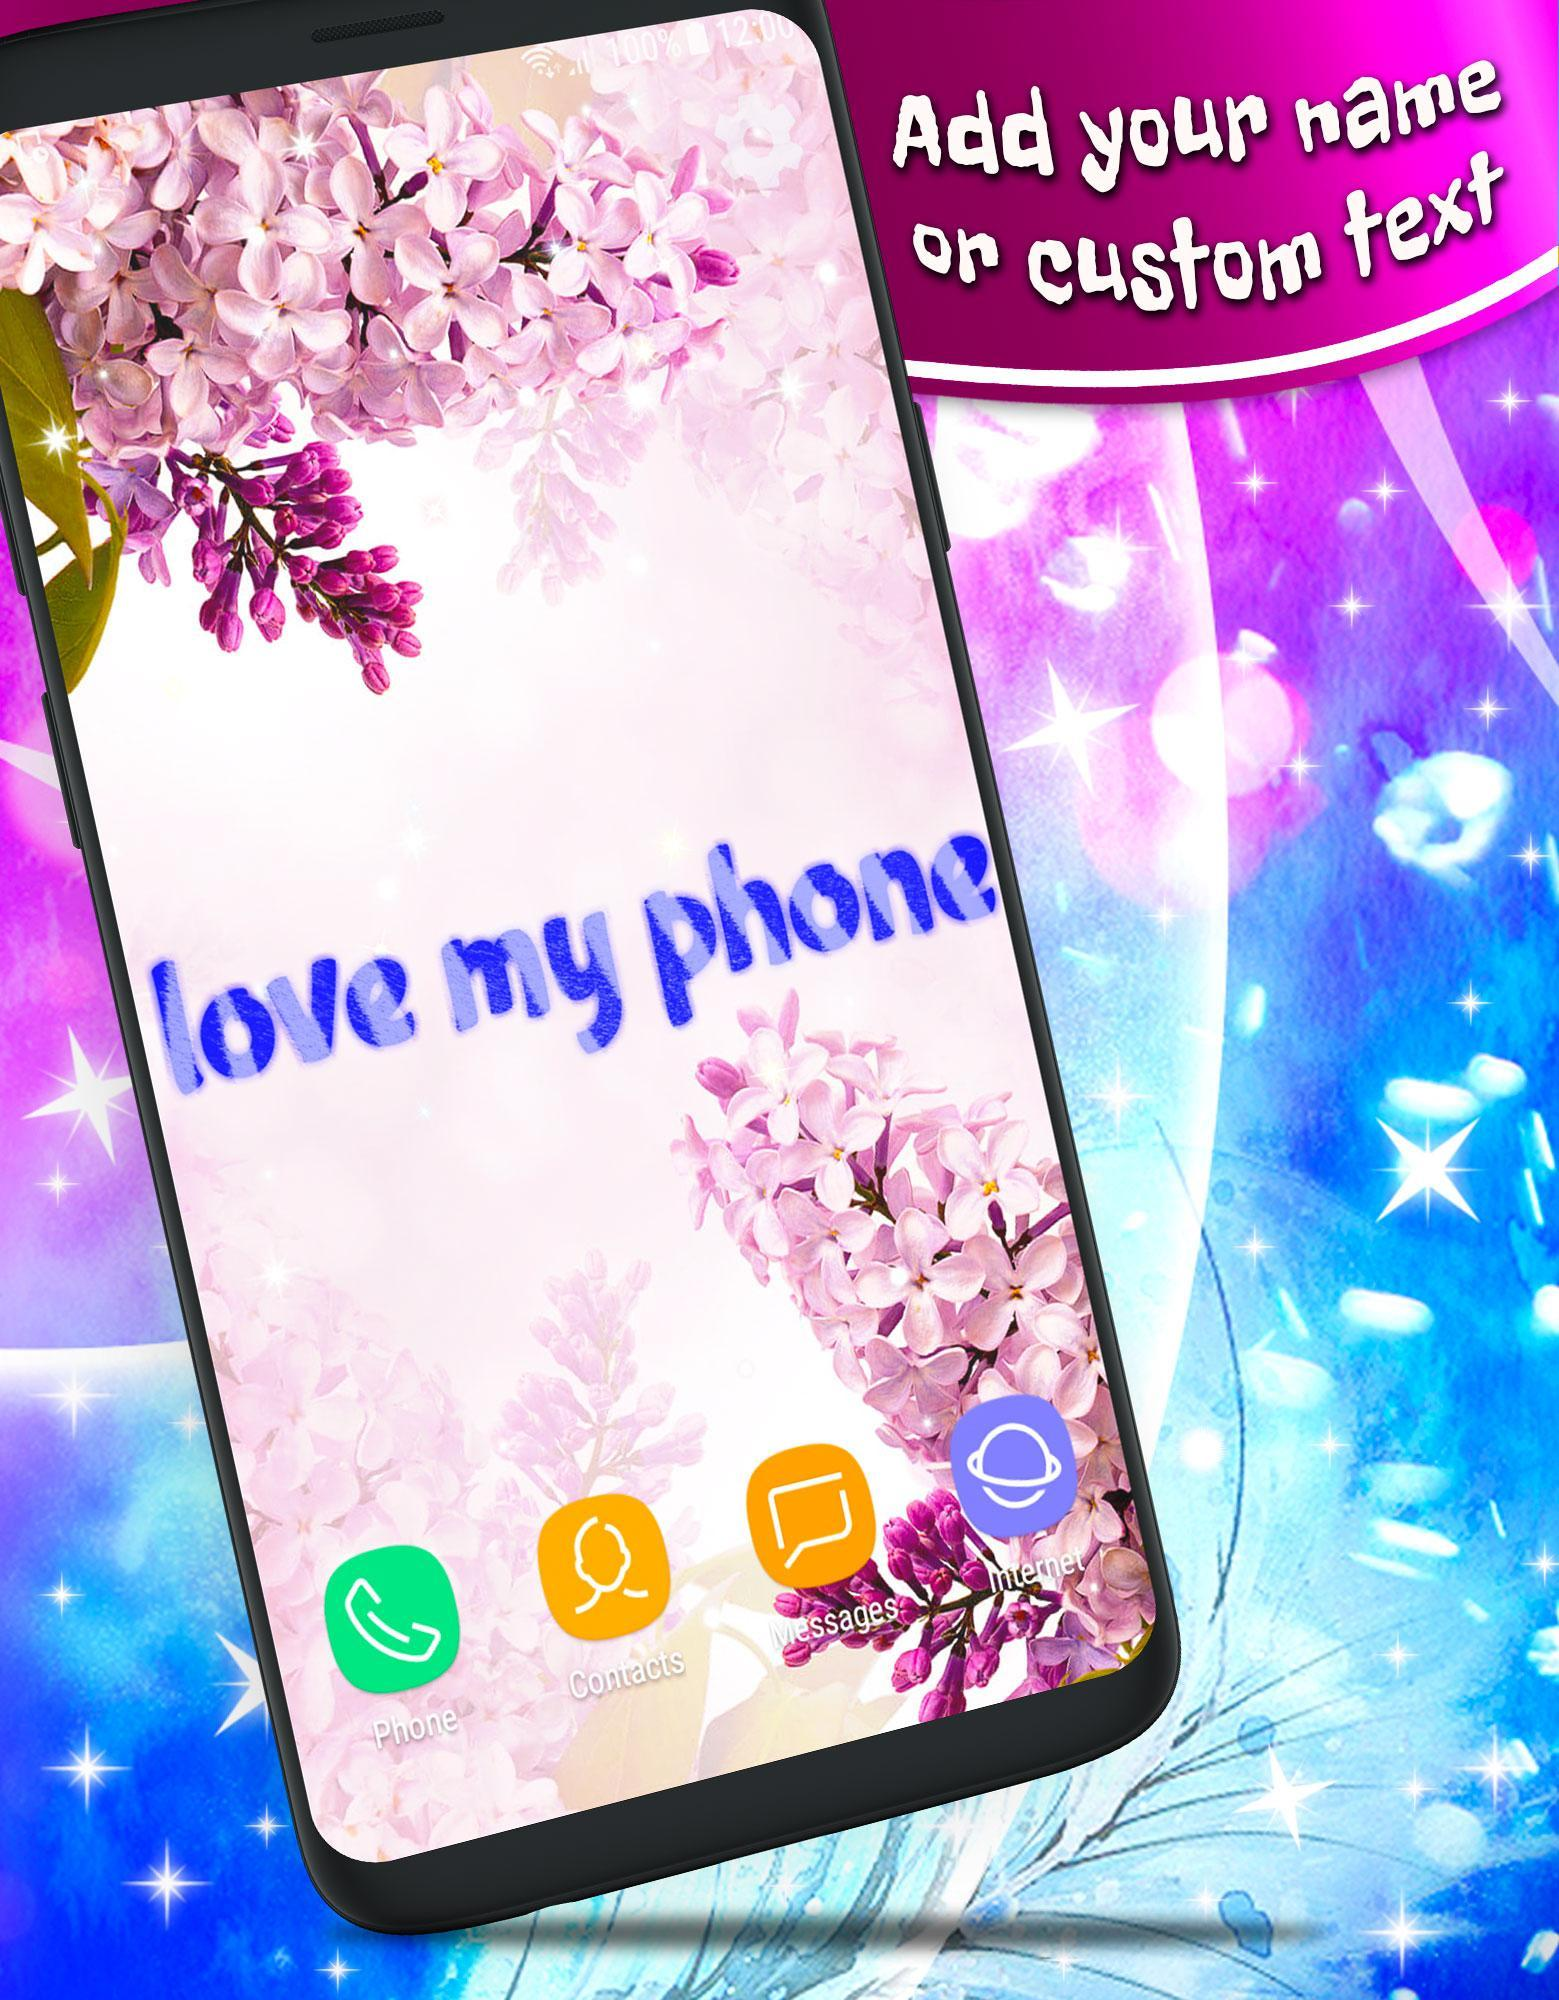 Live Wallpaper For Vivo Spring Wallpapers Themes For